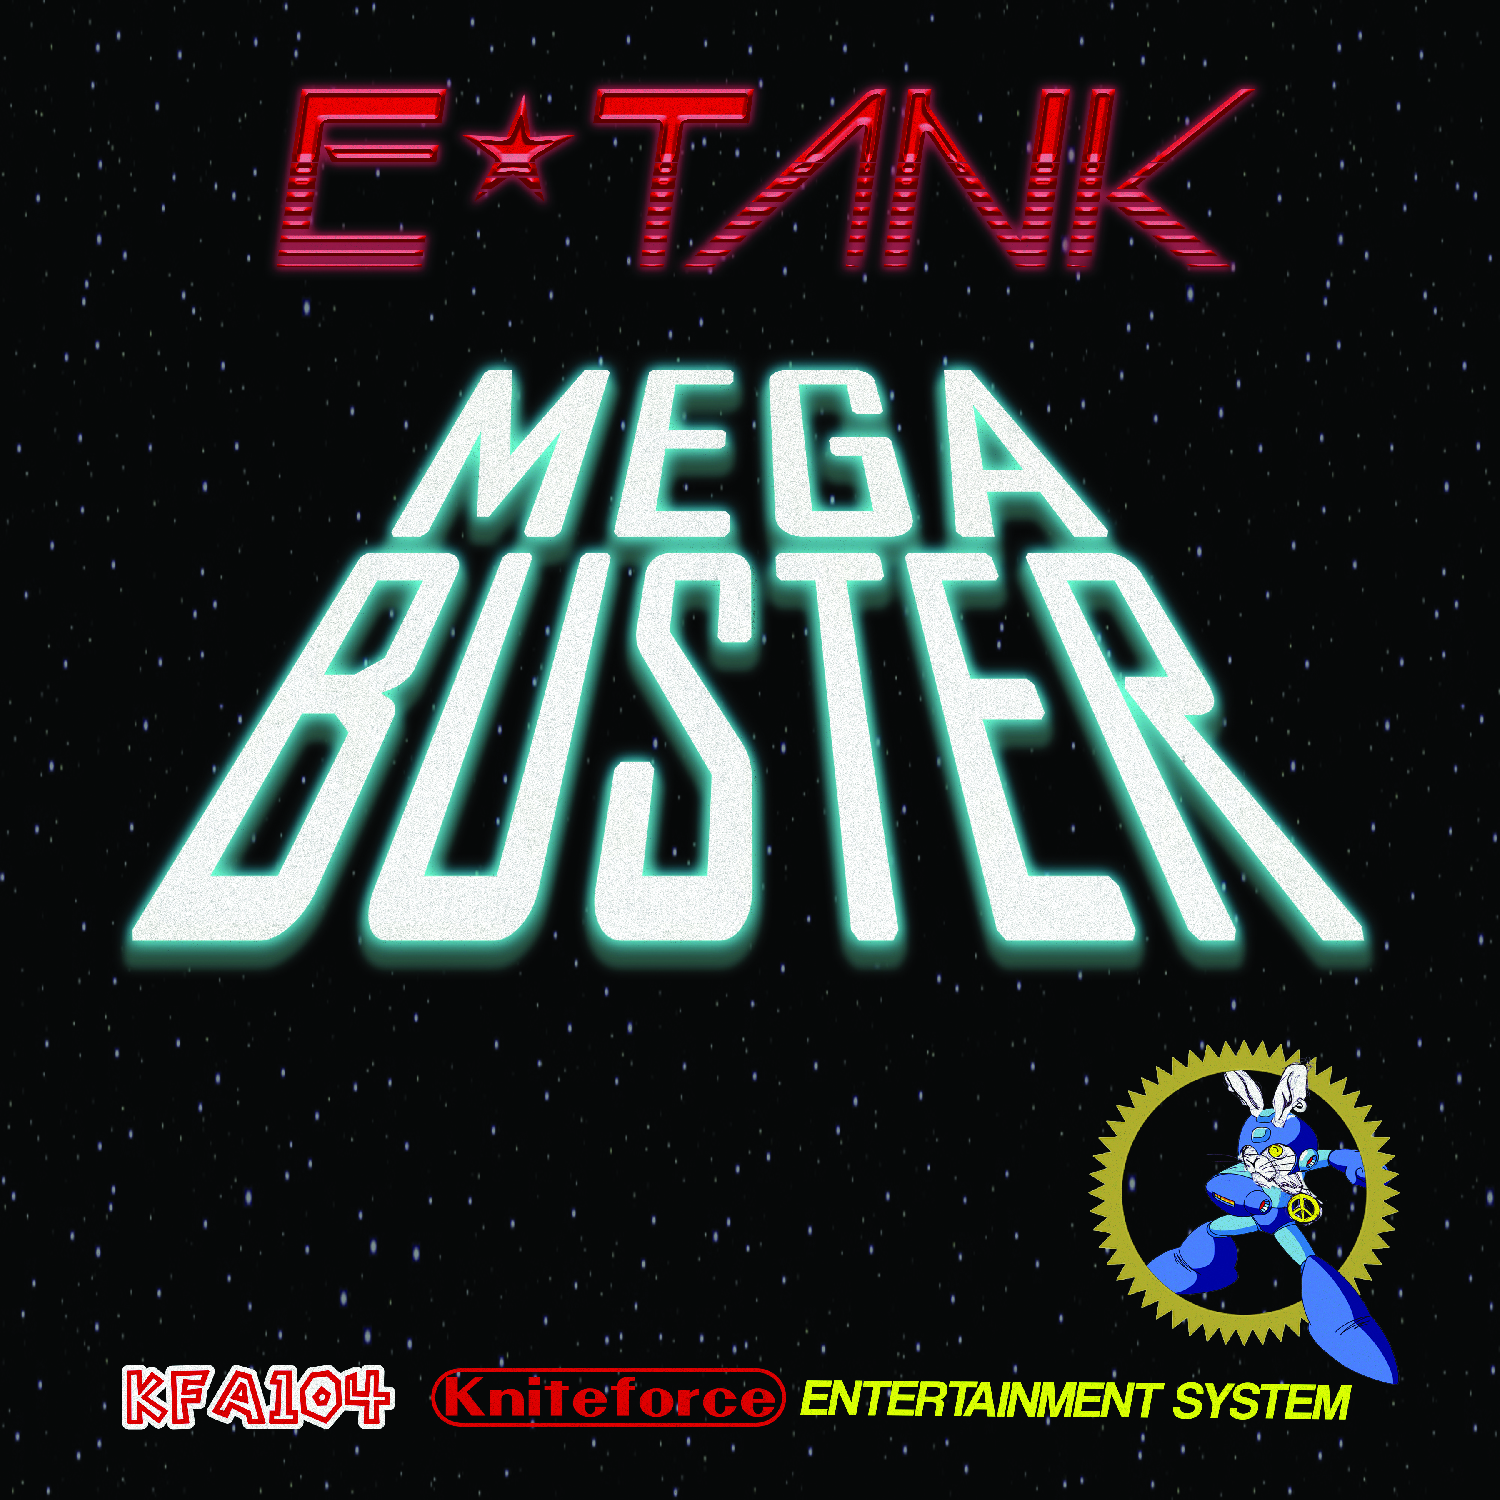 [KFA104] E Tank - Mega Buster (Digital Only)